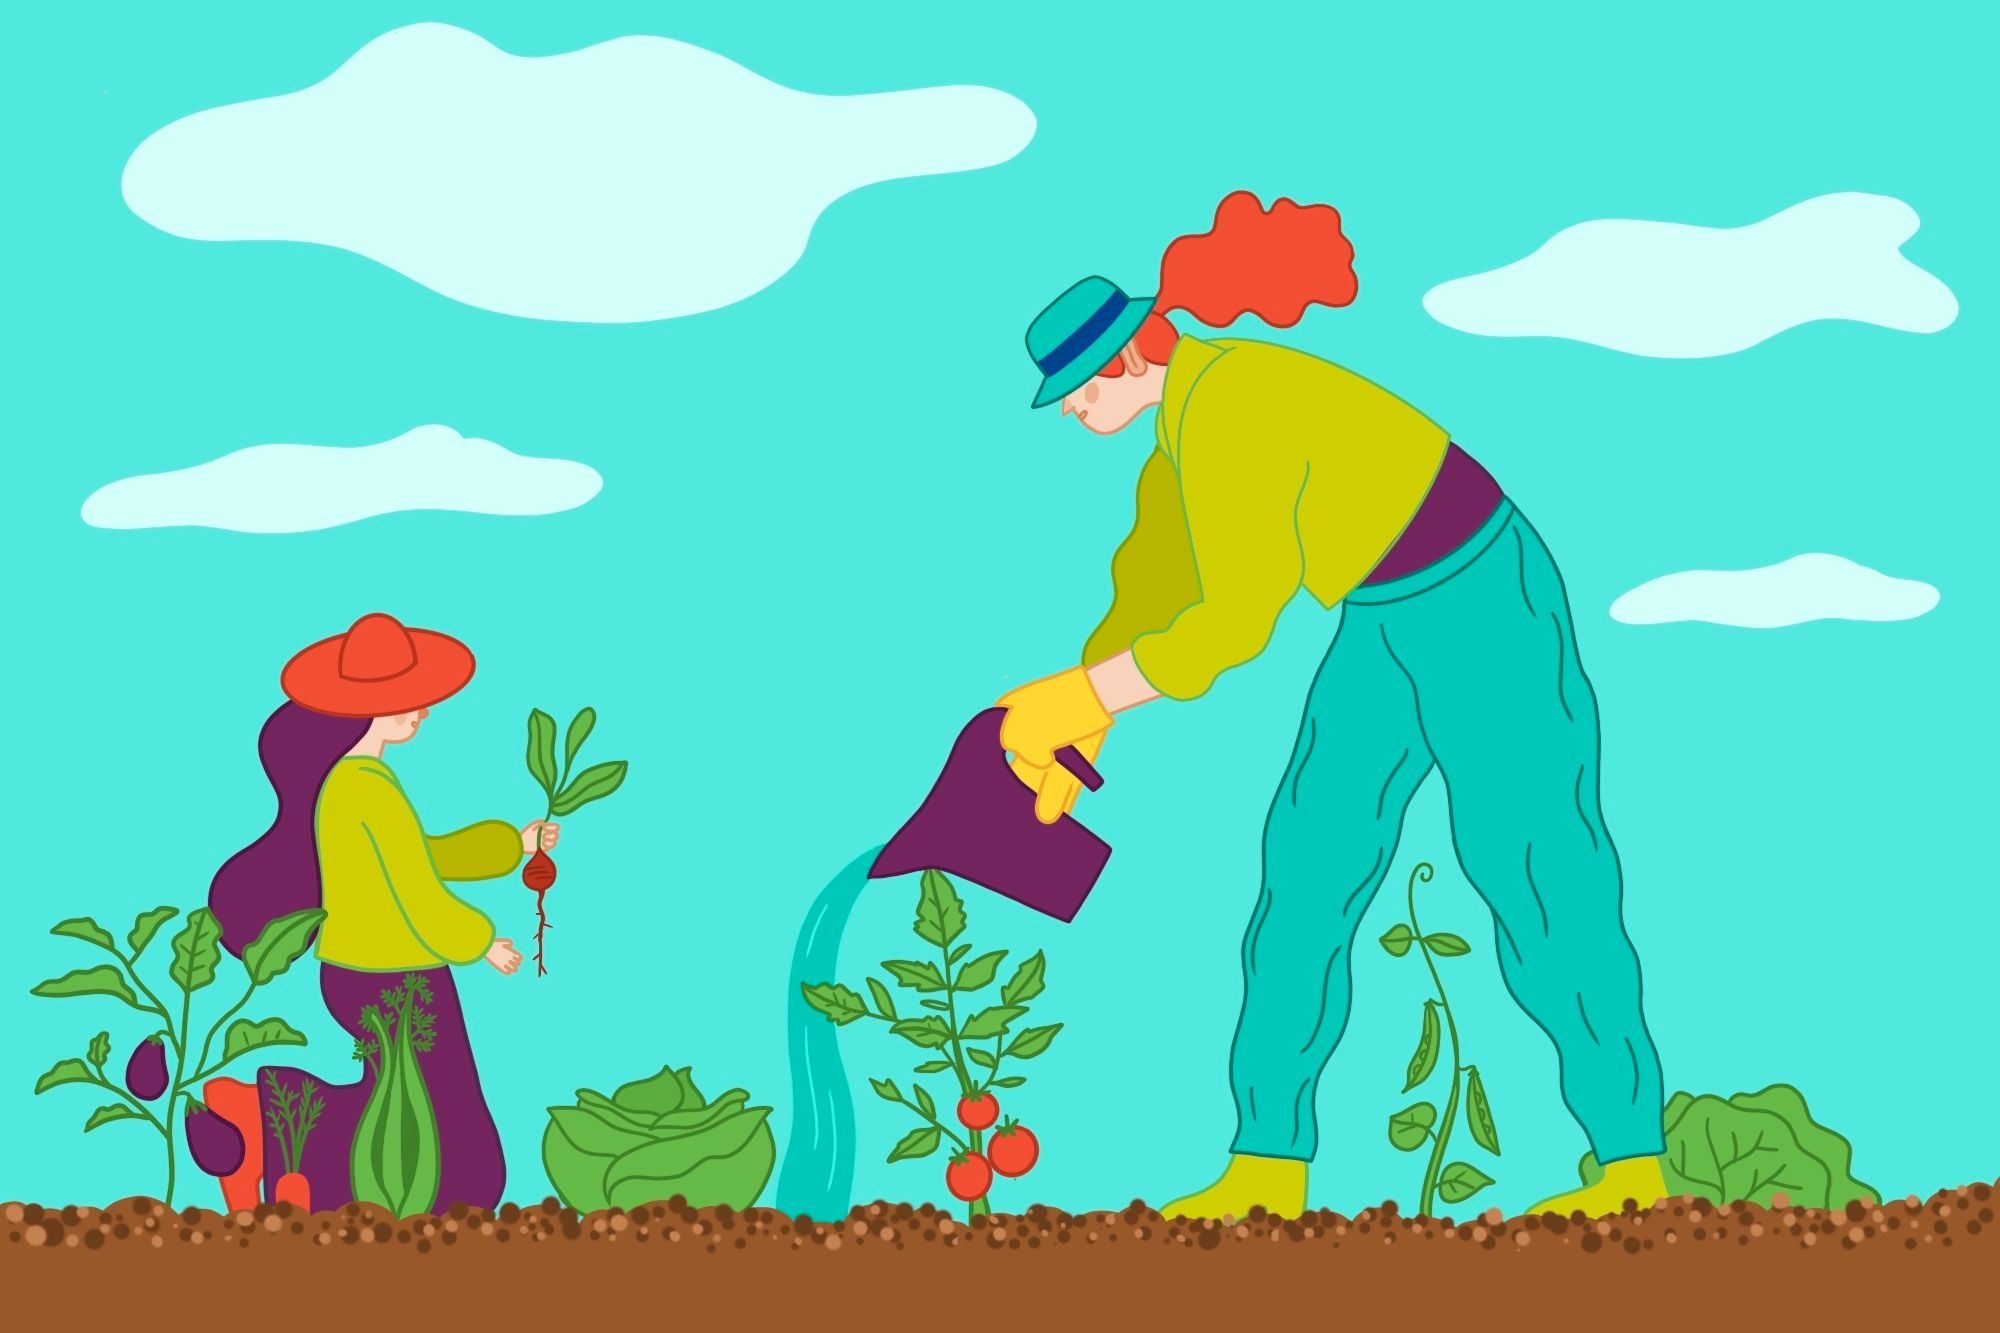 illustration of a woman and child working in a vegetable garden